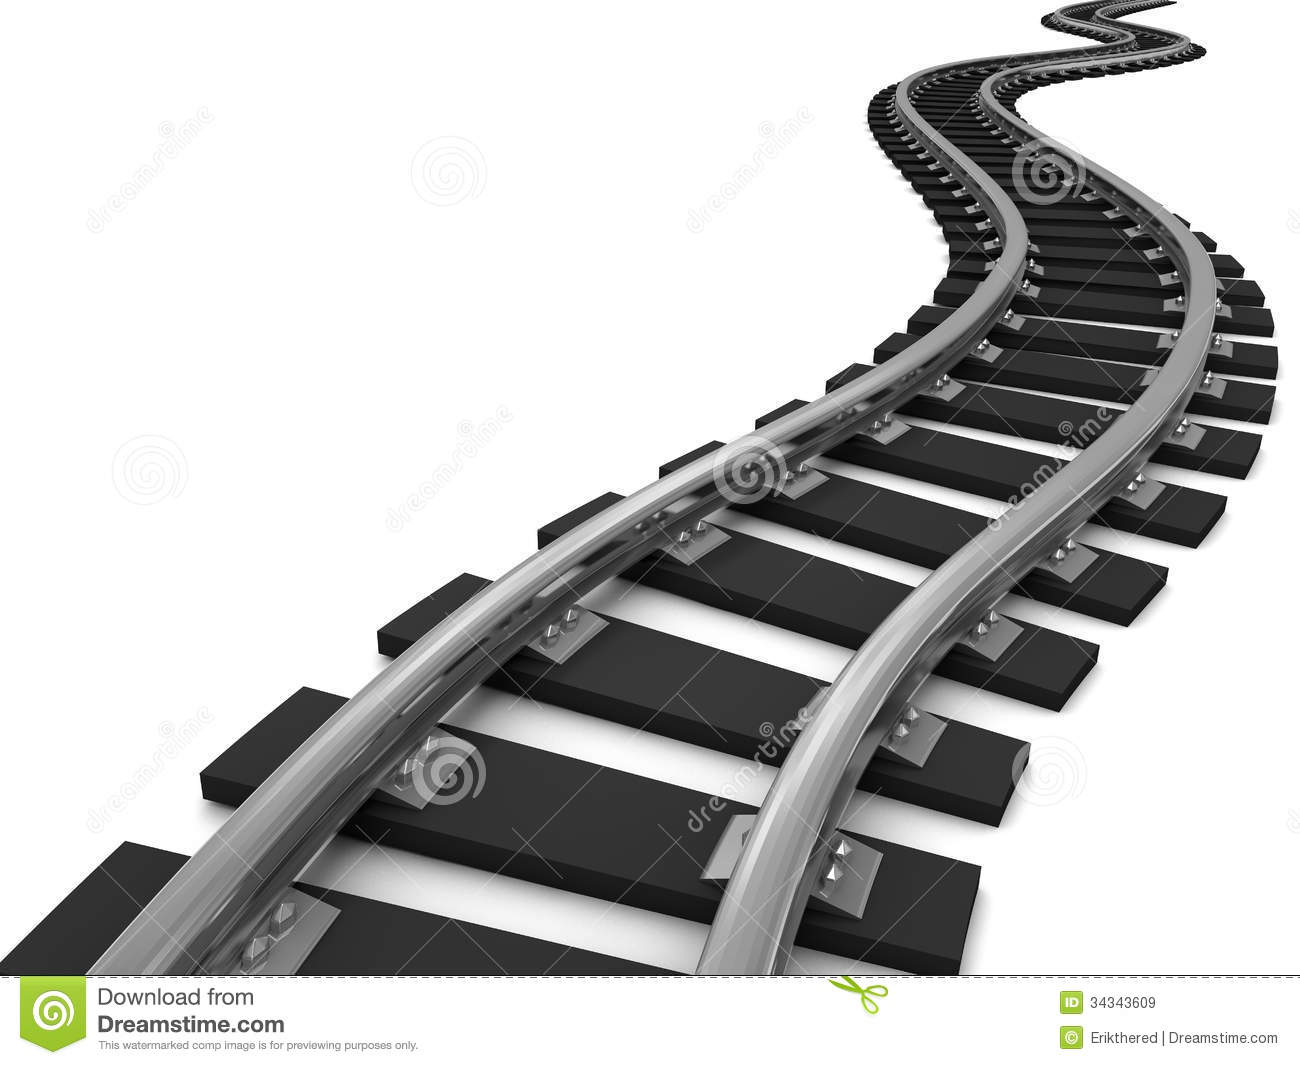 Curved train track